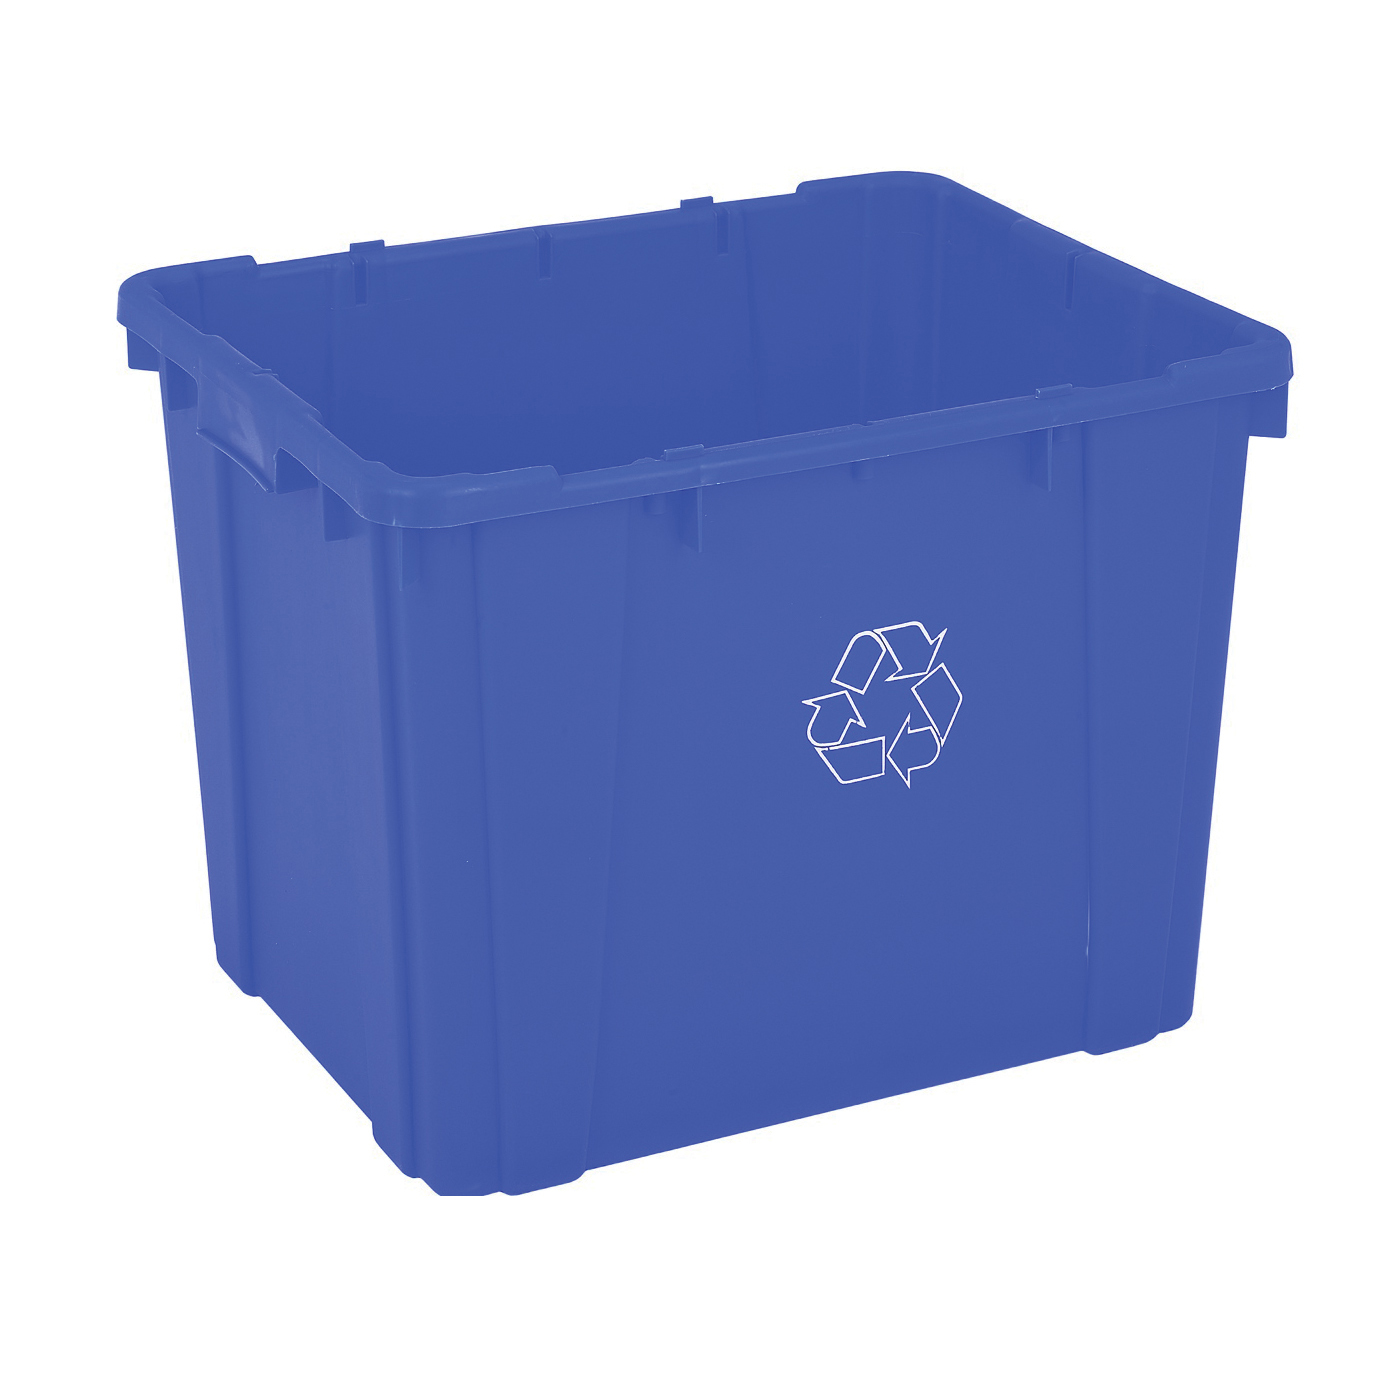 Picture of CONTINENTAL COMMERCIAL 5914-1 Curbside Recycling Bin, 14 gal Capacity, Plastic, Blue